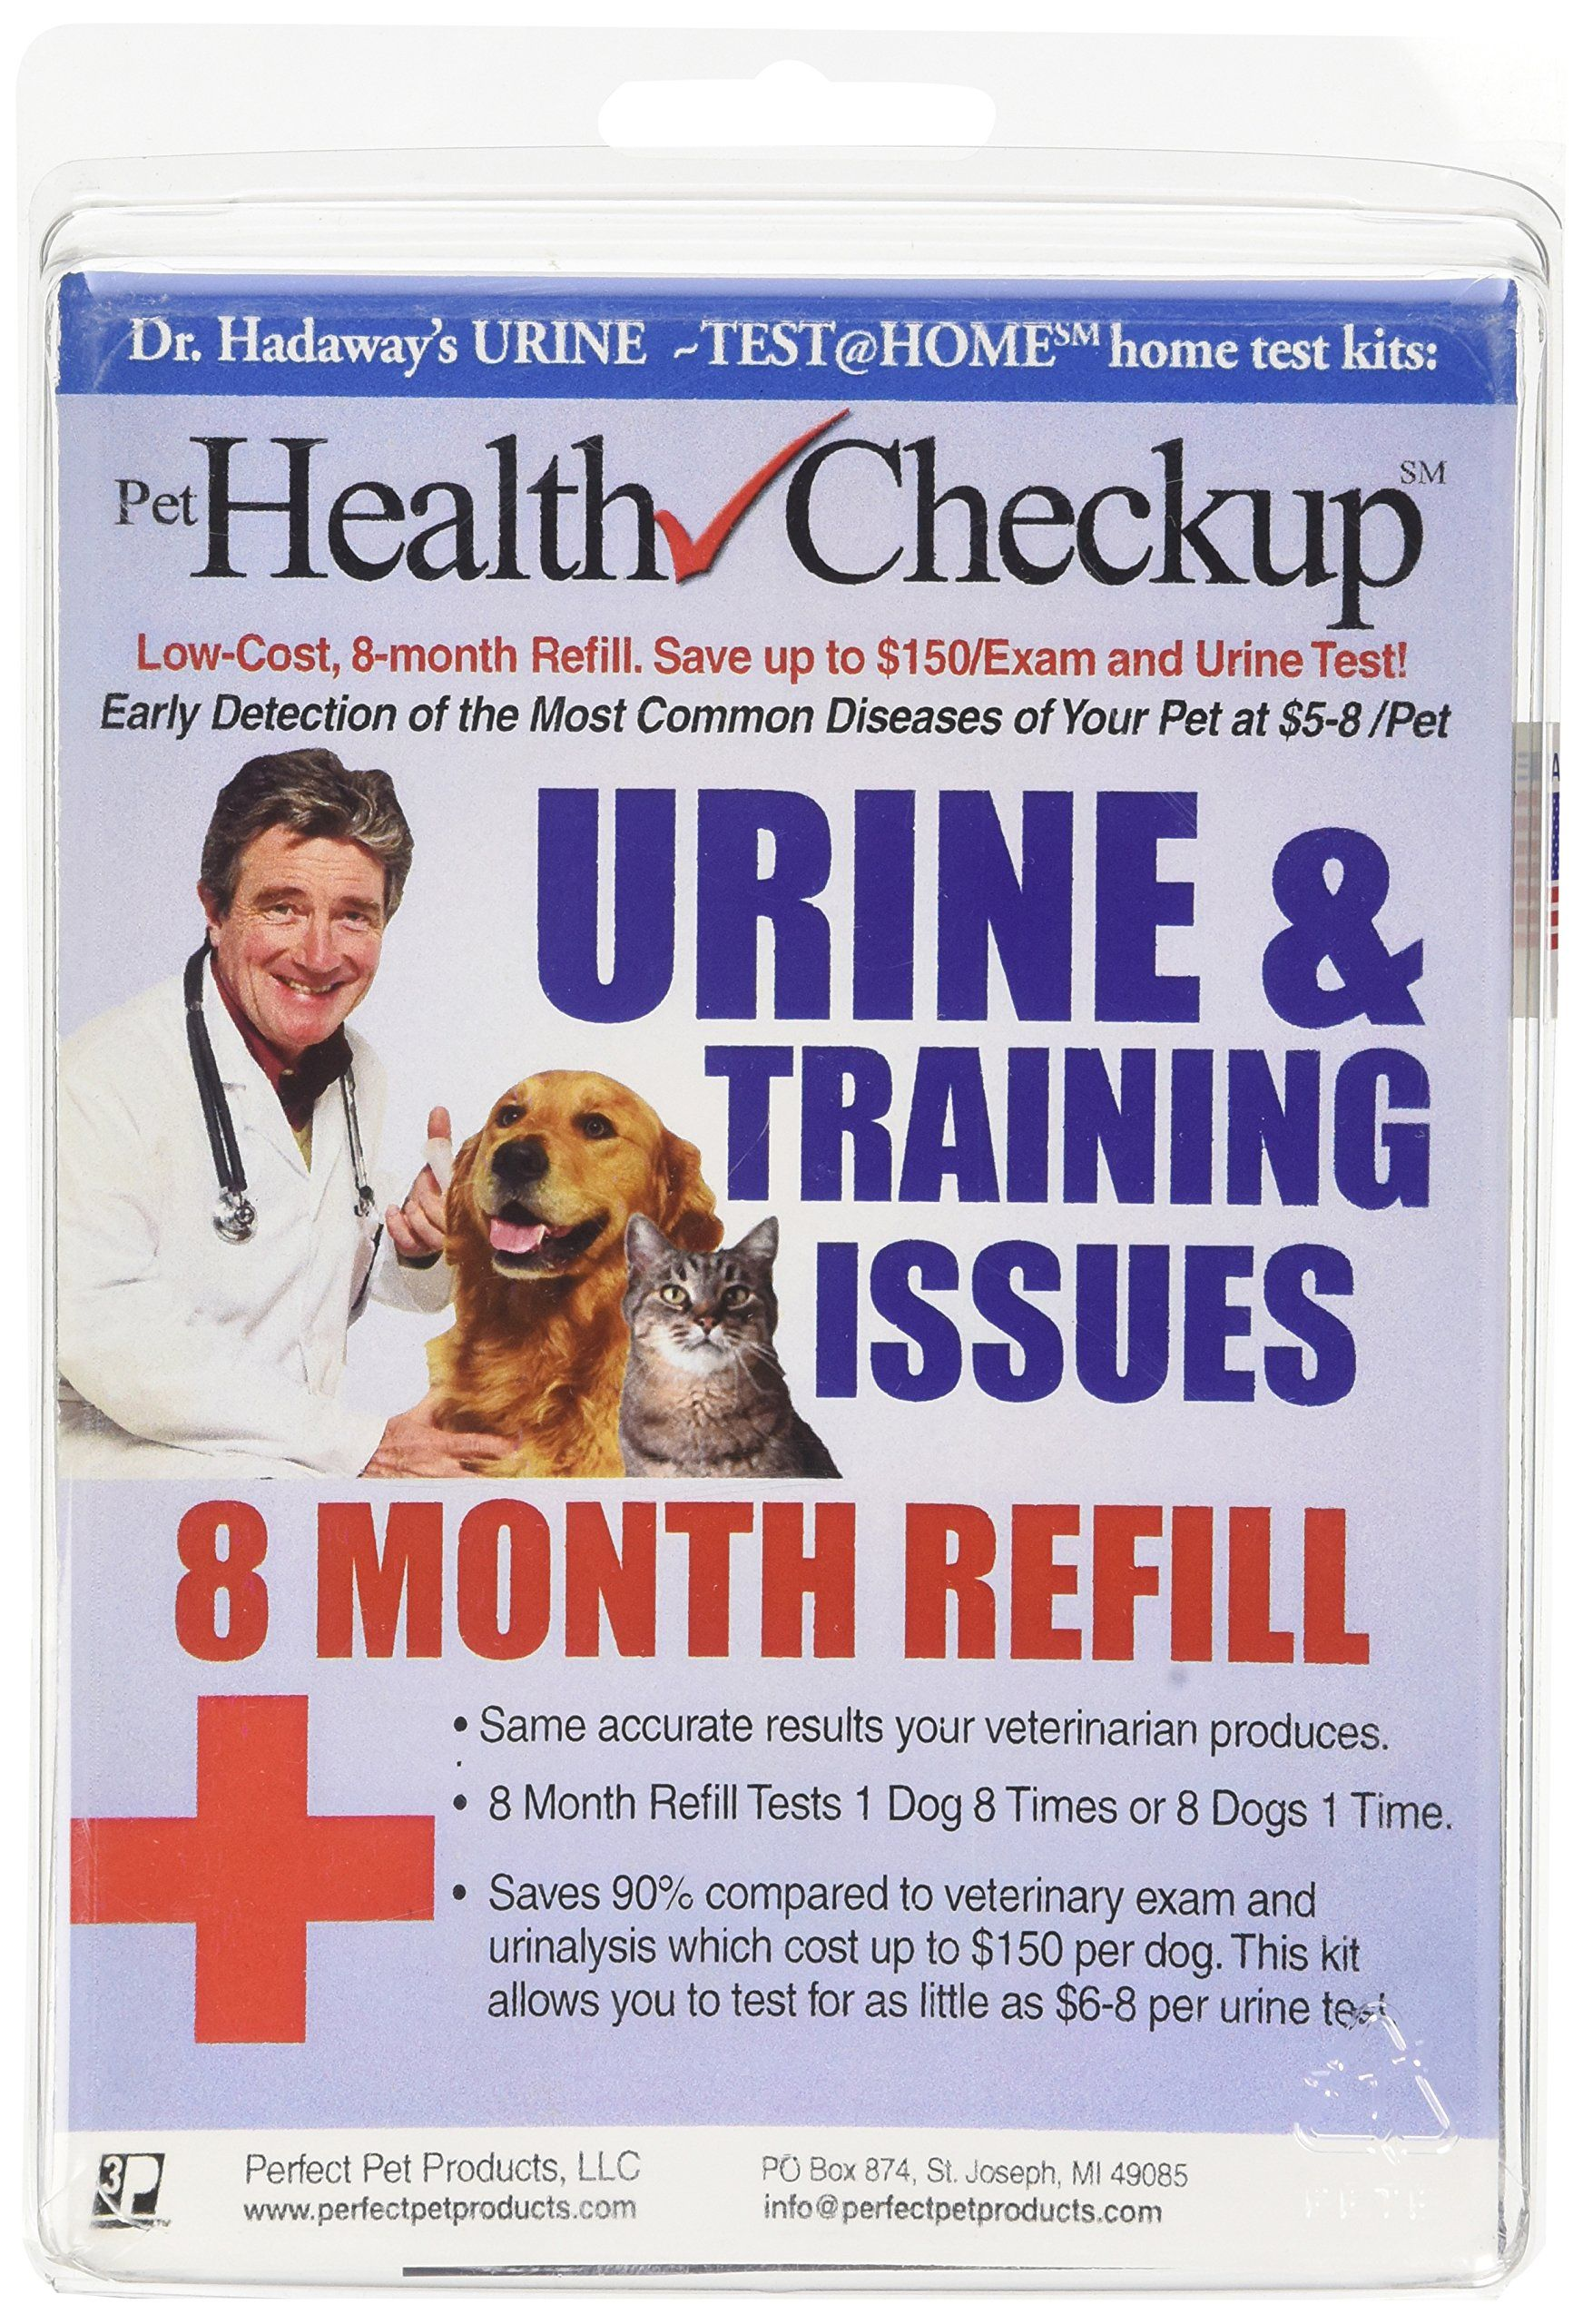 Pet Health Urine Test Kit 8 Month Refill For Urine Infections Diabetes Pet Disease Urinating In Home Or Other Training Problems Pet Health Pet Health Care Pets